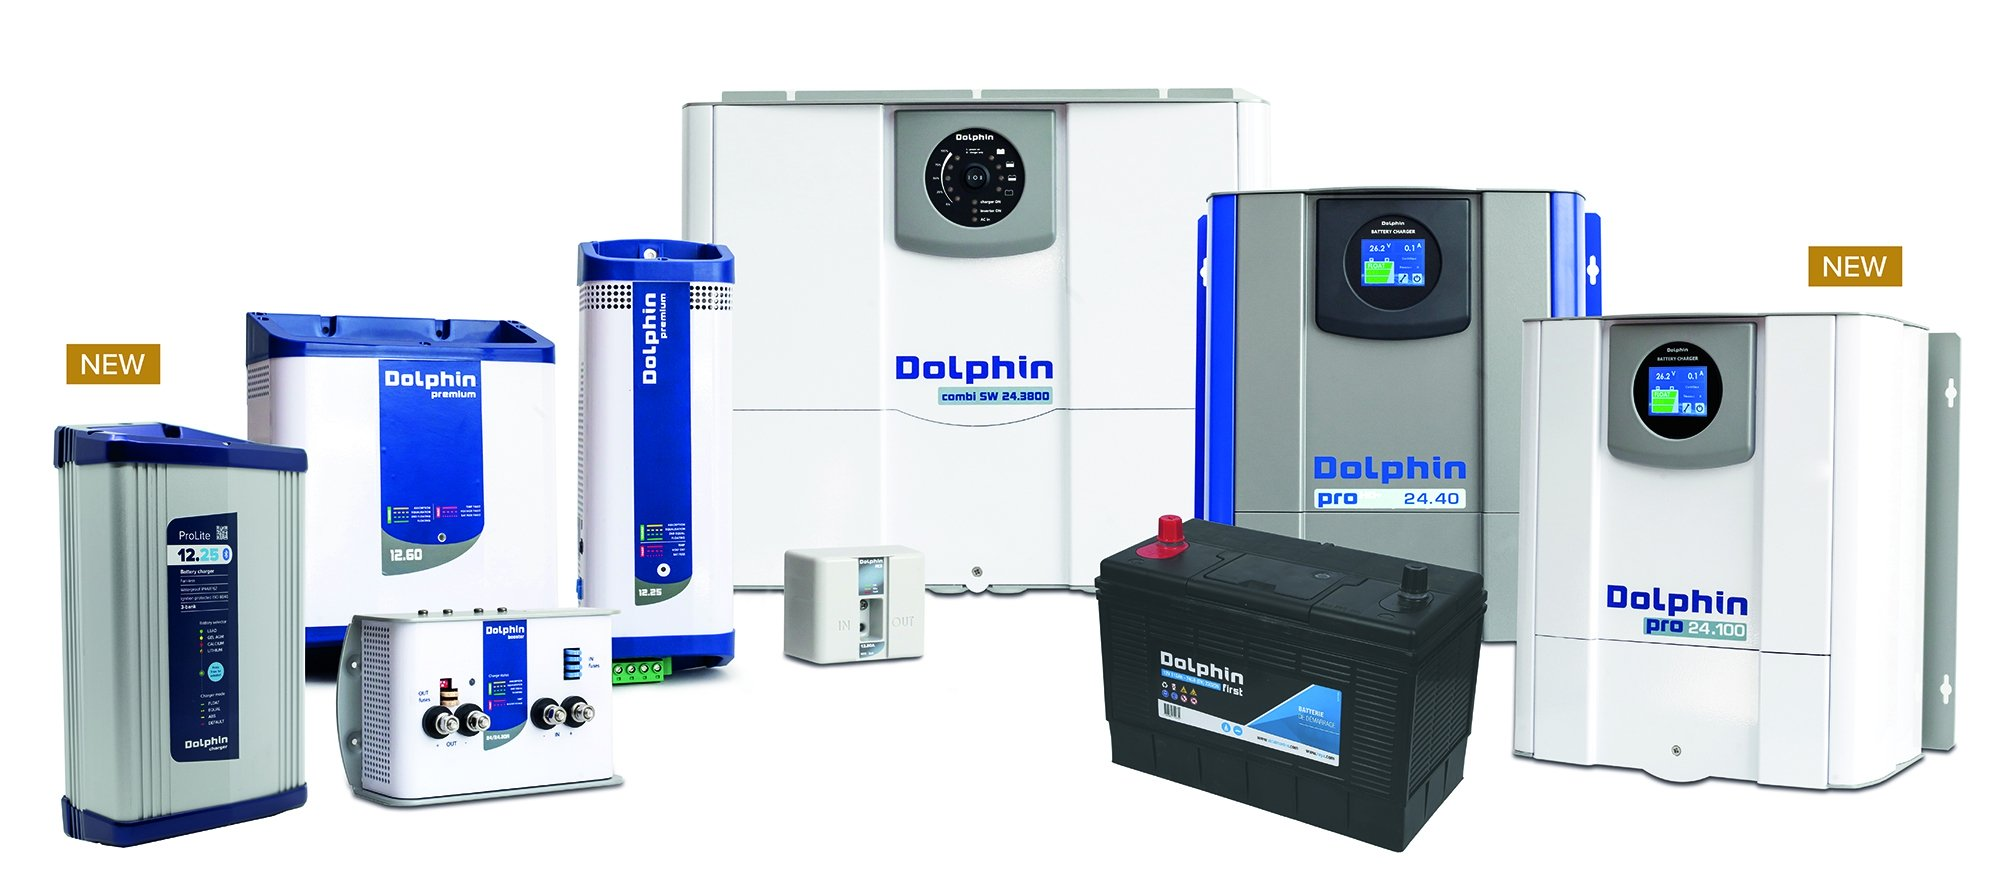 Dolphin Charger: a complete family of marine chargers since 1995